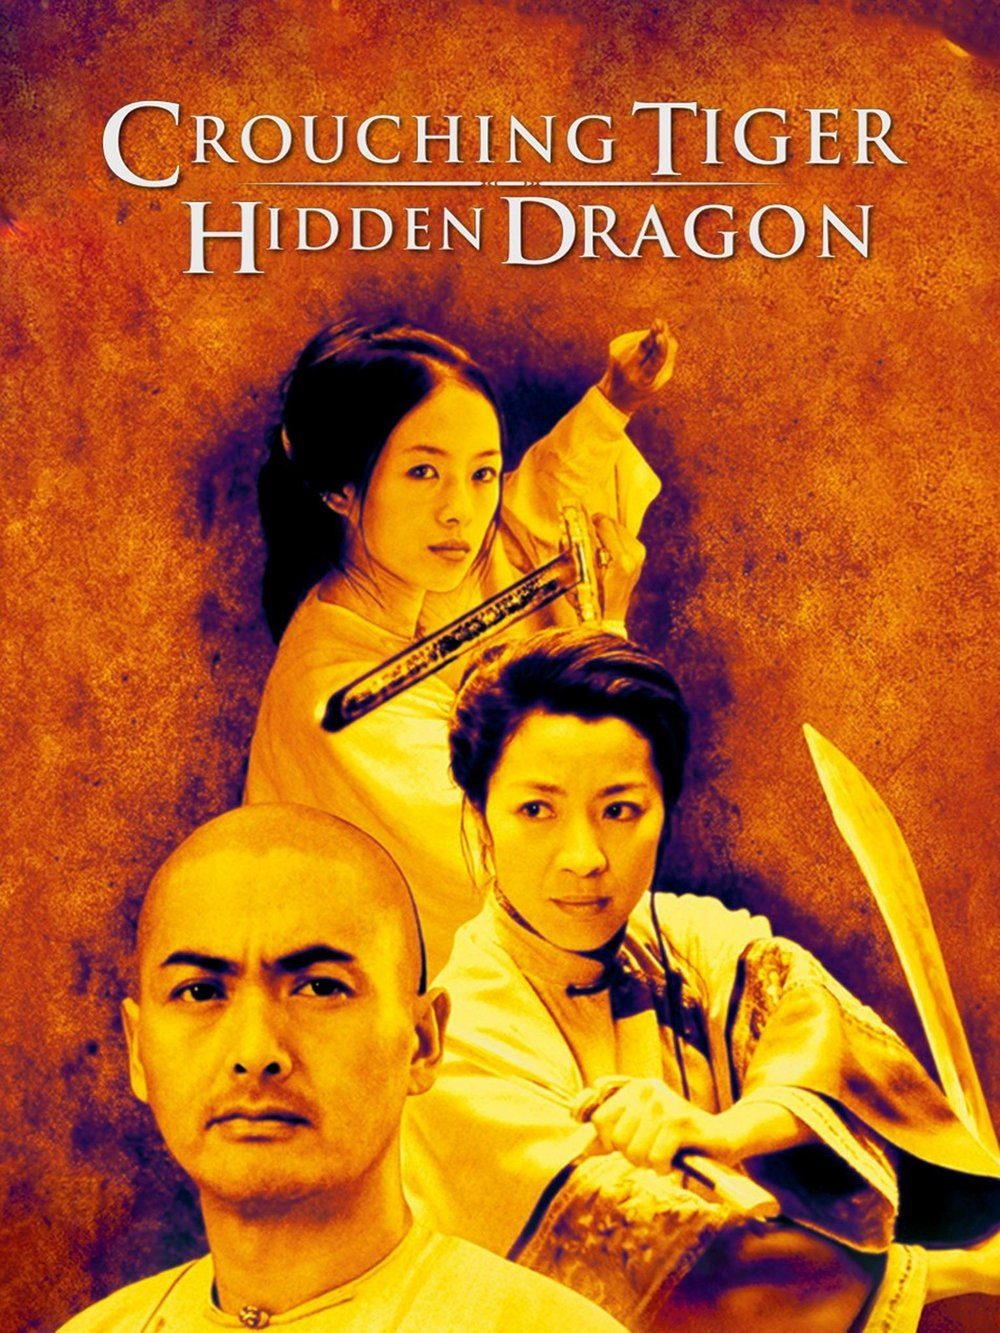 Crouching Tiger, Hidden Dragon - Release Date: 2000Rating: PG-13Emi Rating: 9/10This evocative drama takes place in 19th century Qing Dynasty China. One of the most passionate and elegant action films I have seen in my life. Crouching Tiger, Hidden dragon might just leave you speechless...and possibly shedding tears. Follow the story of two lovers, a stolen sword, and the chase it leads them on. Note that this is also a movie with some amazingly talented and fierce women! So that's always a plus!!